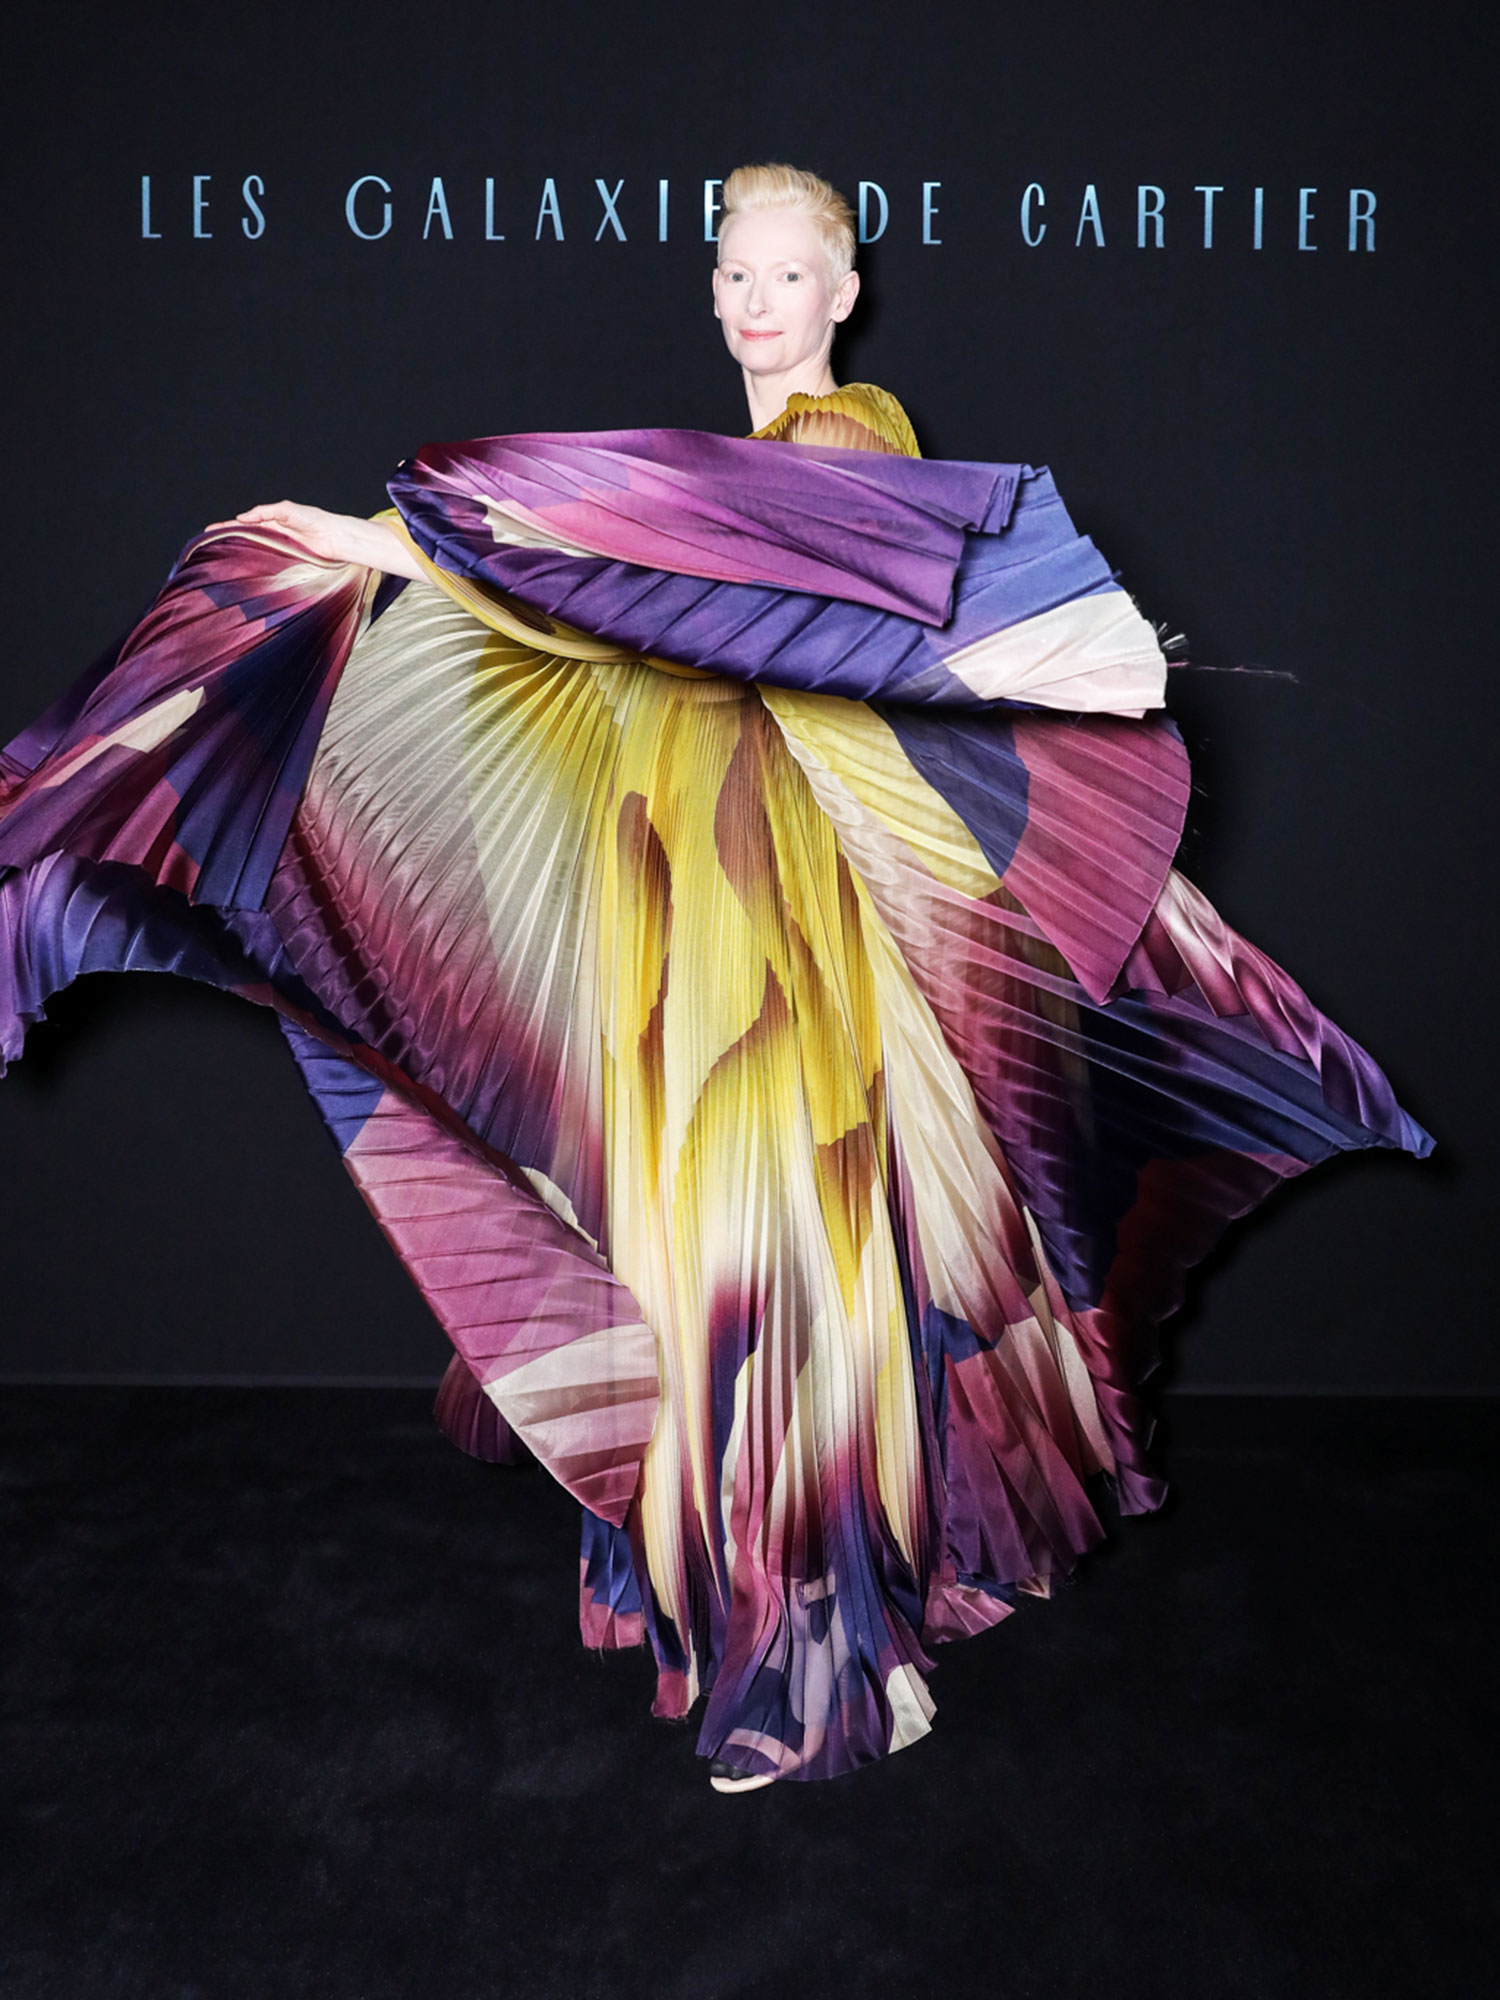 Iris van Herpen Tilda Swinton - In a gradient-dyed organza cape look on Jan. 23.